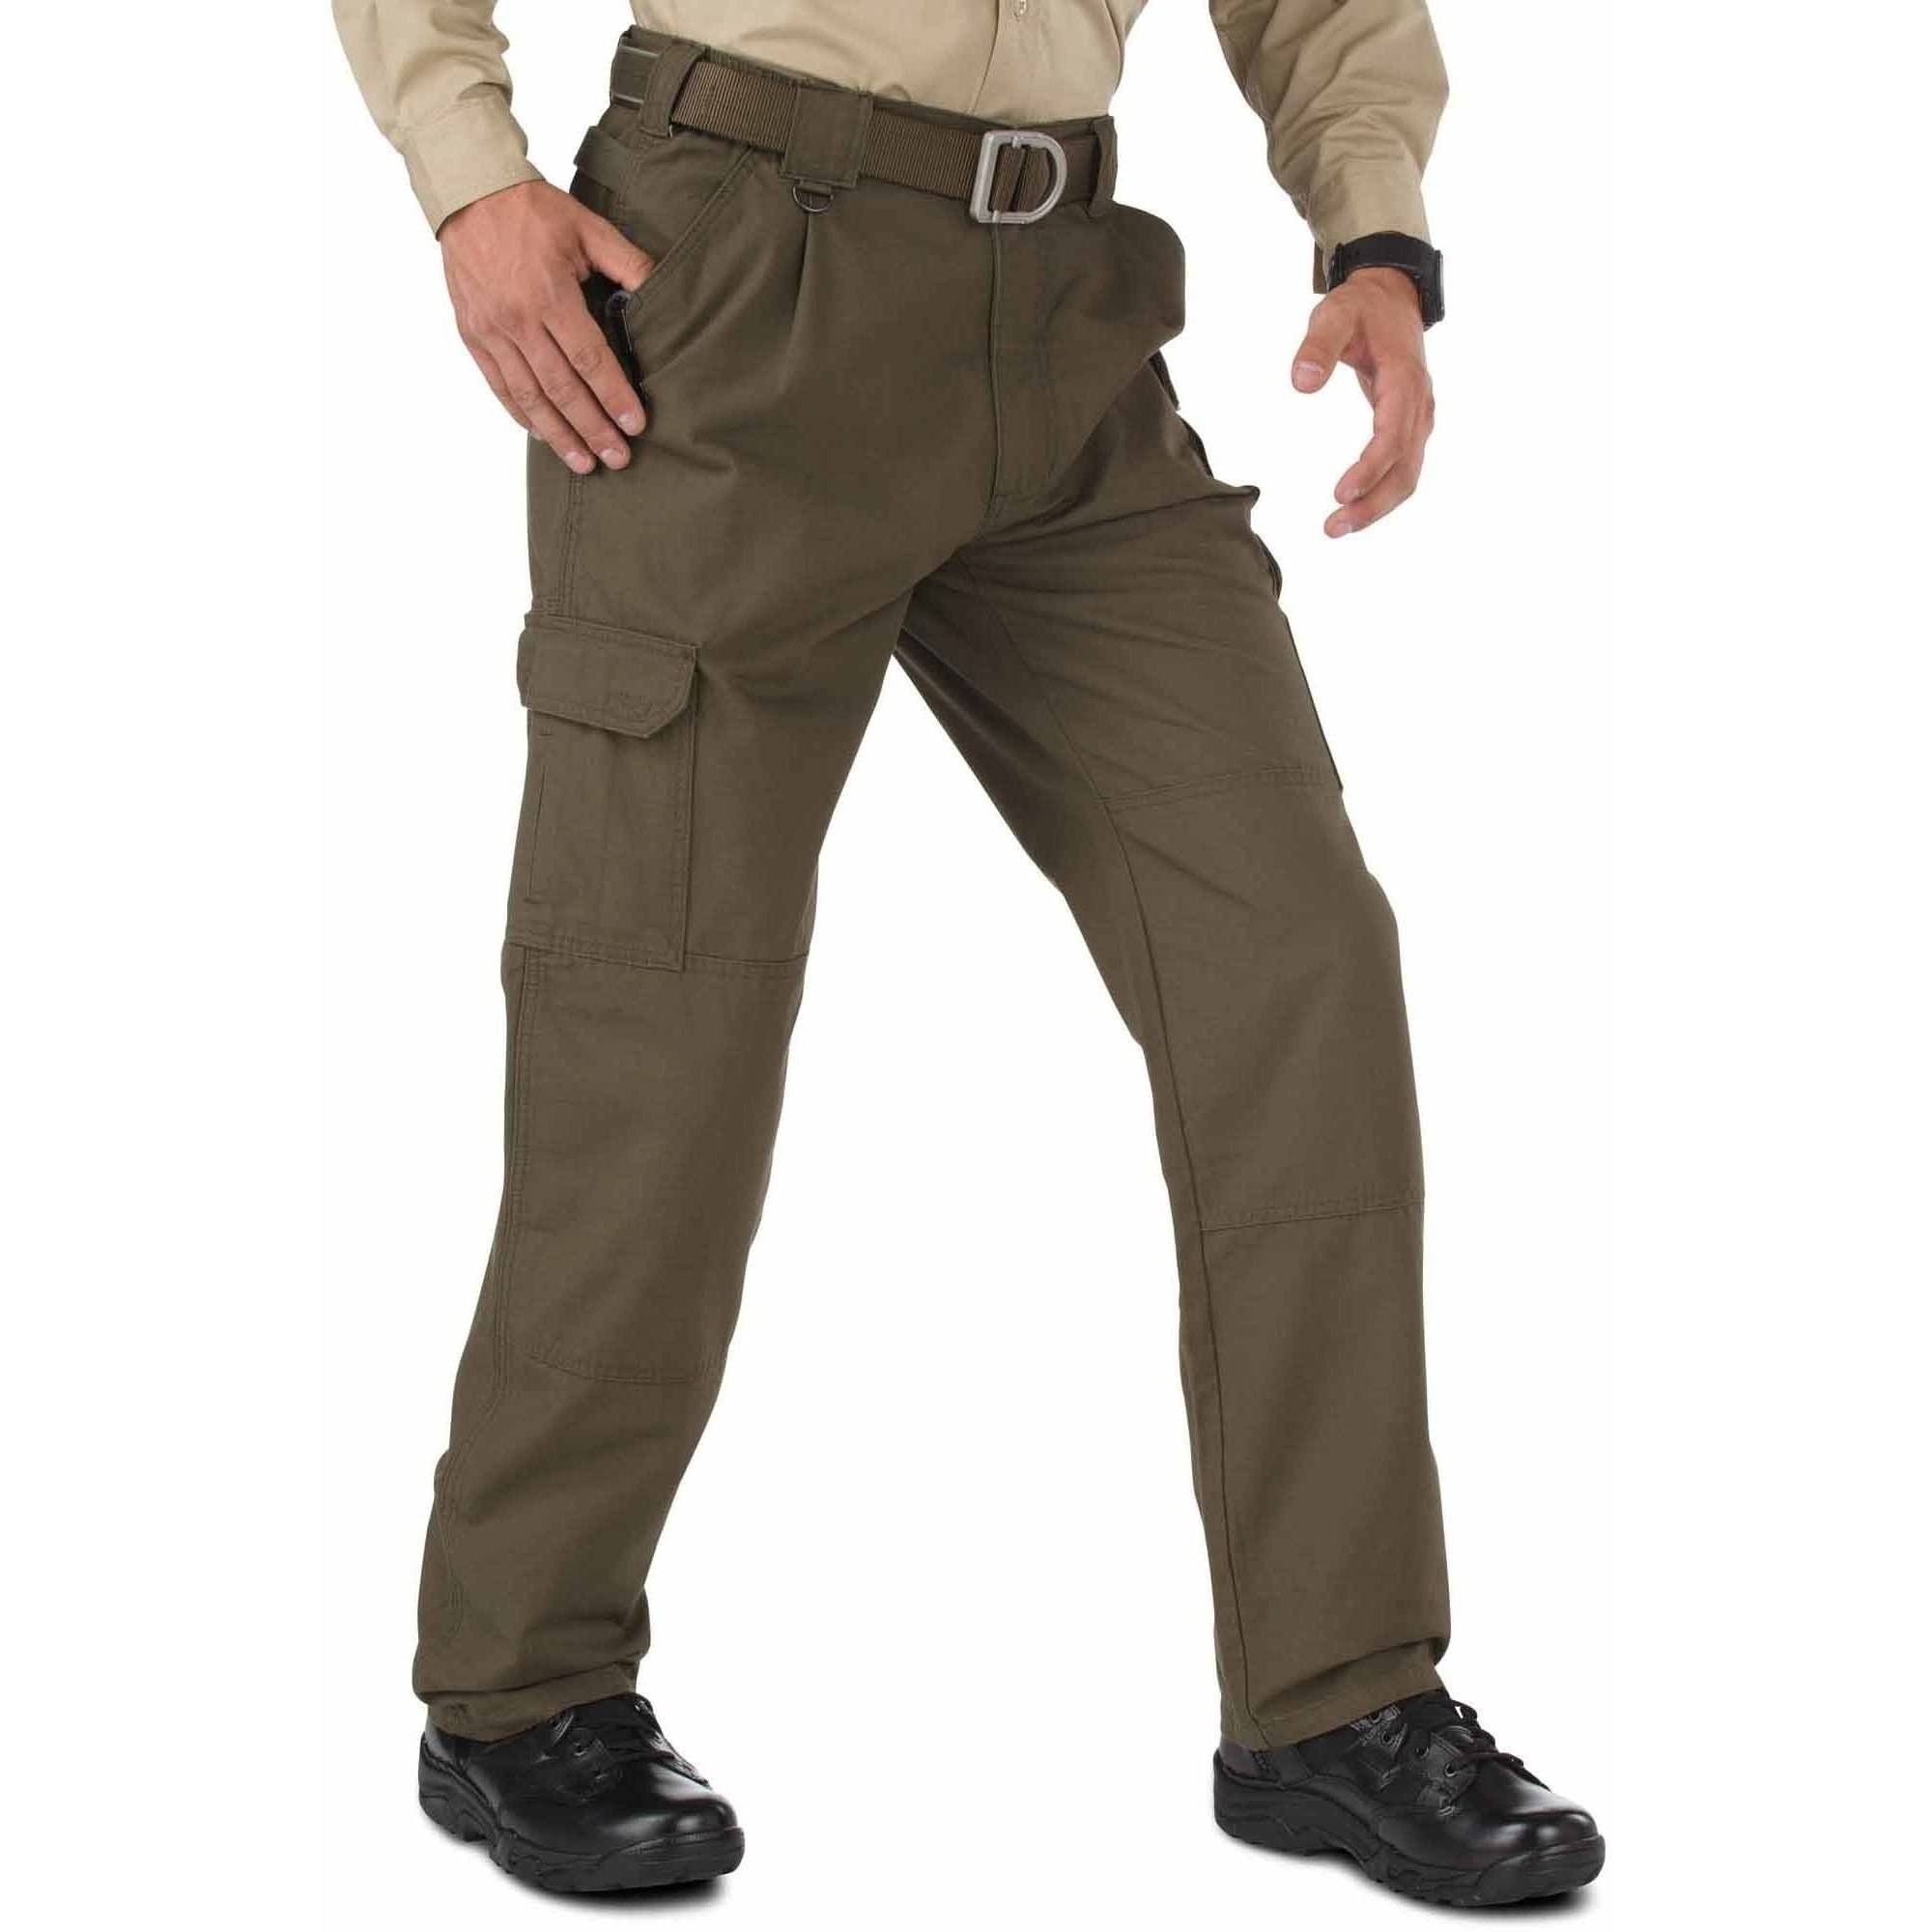 5.11 Tactical Men's Cotton Tactical Pant, Tundra